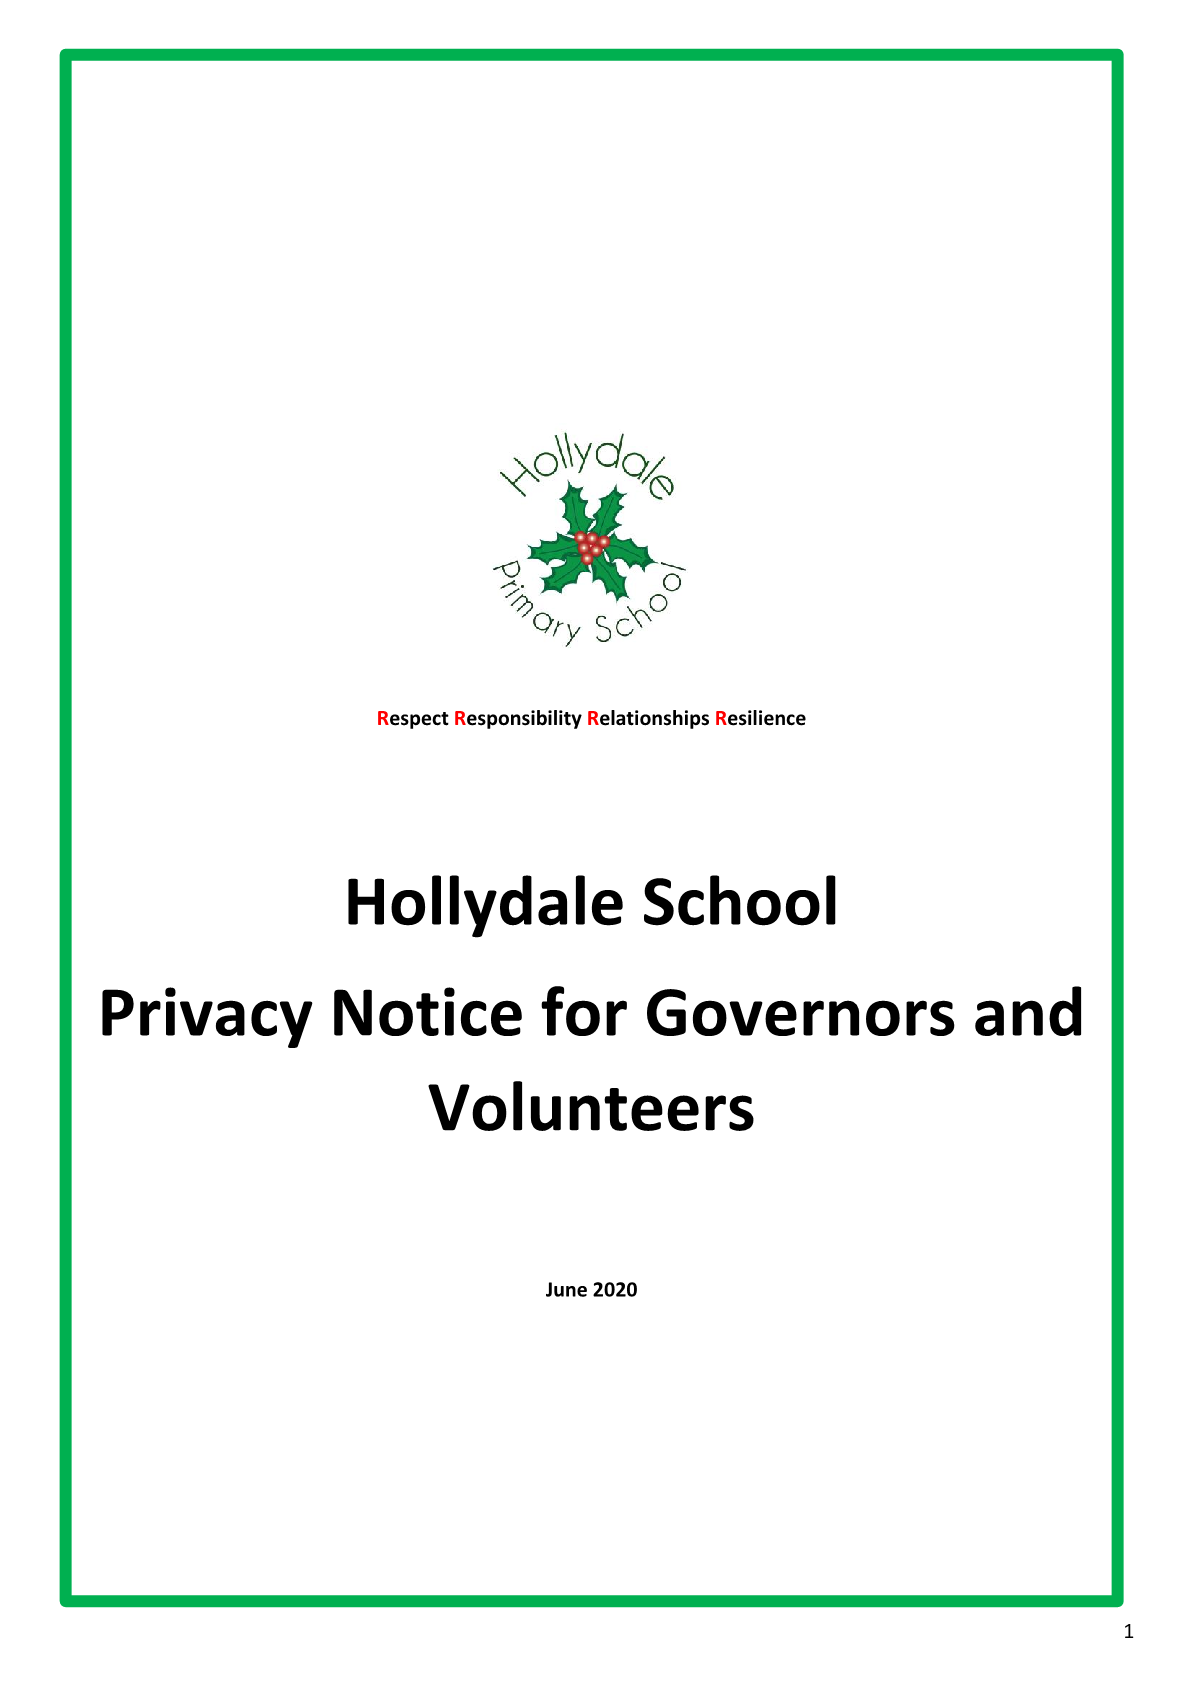 Privicy Notice Governors and Volunteers